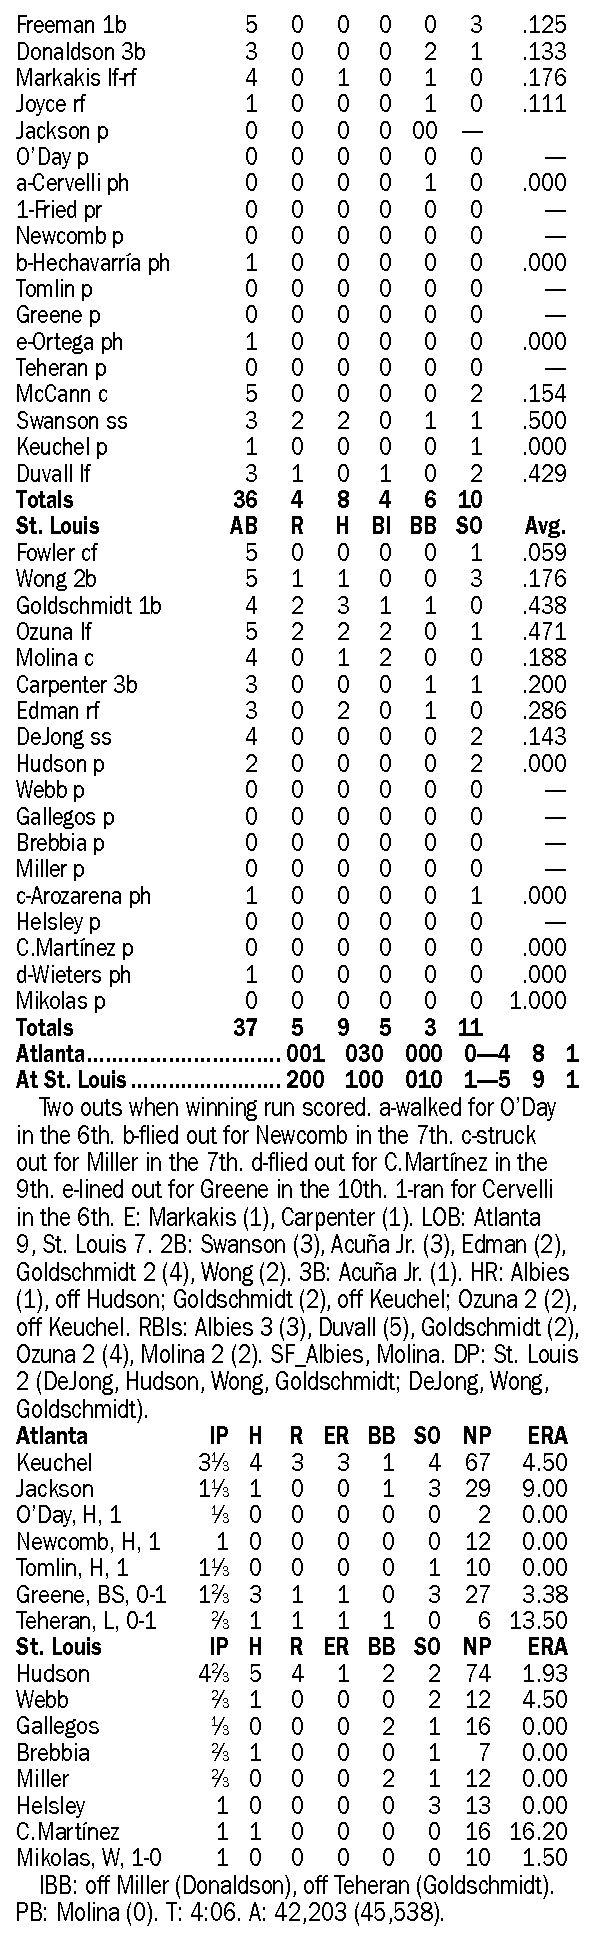 Cardinals force Game 5 with win in extra innings